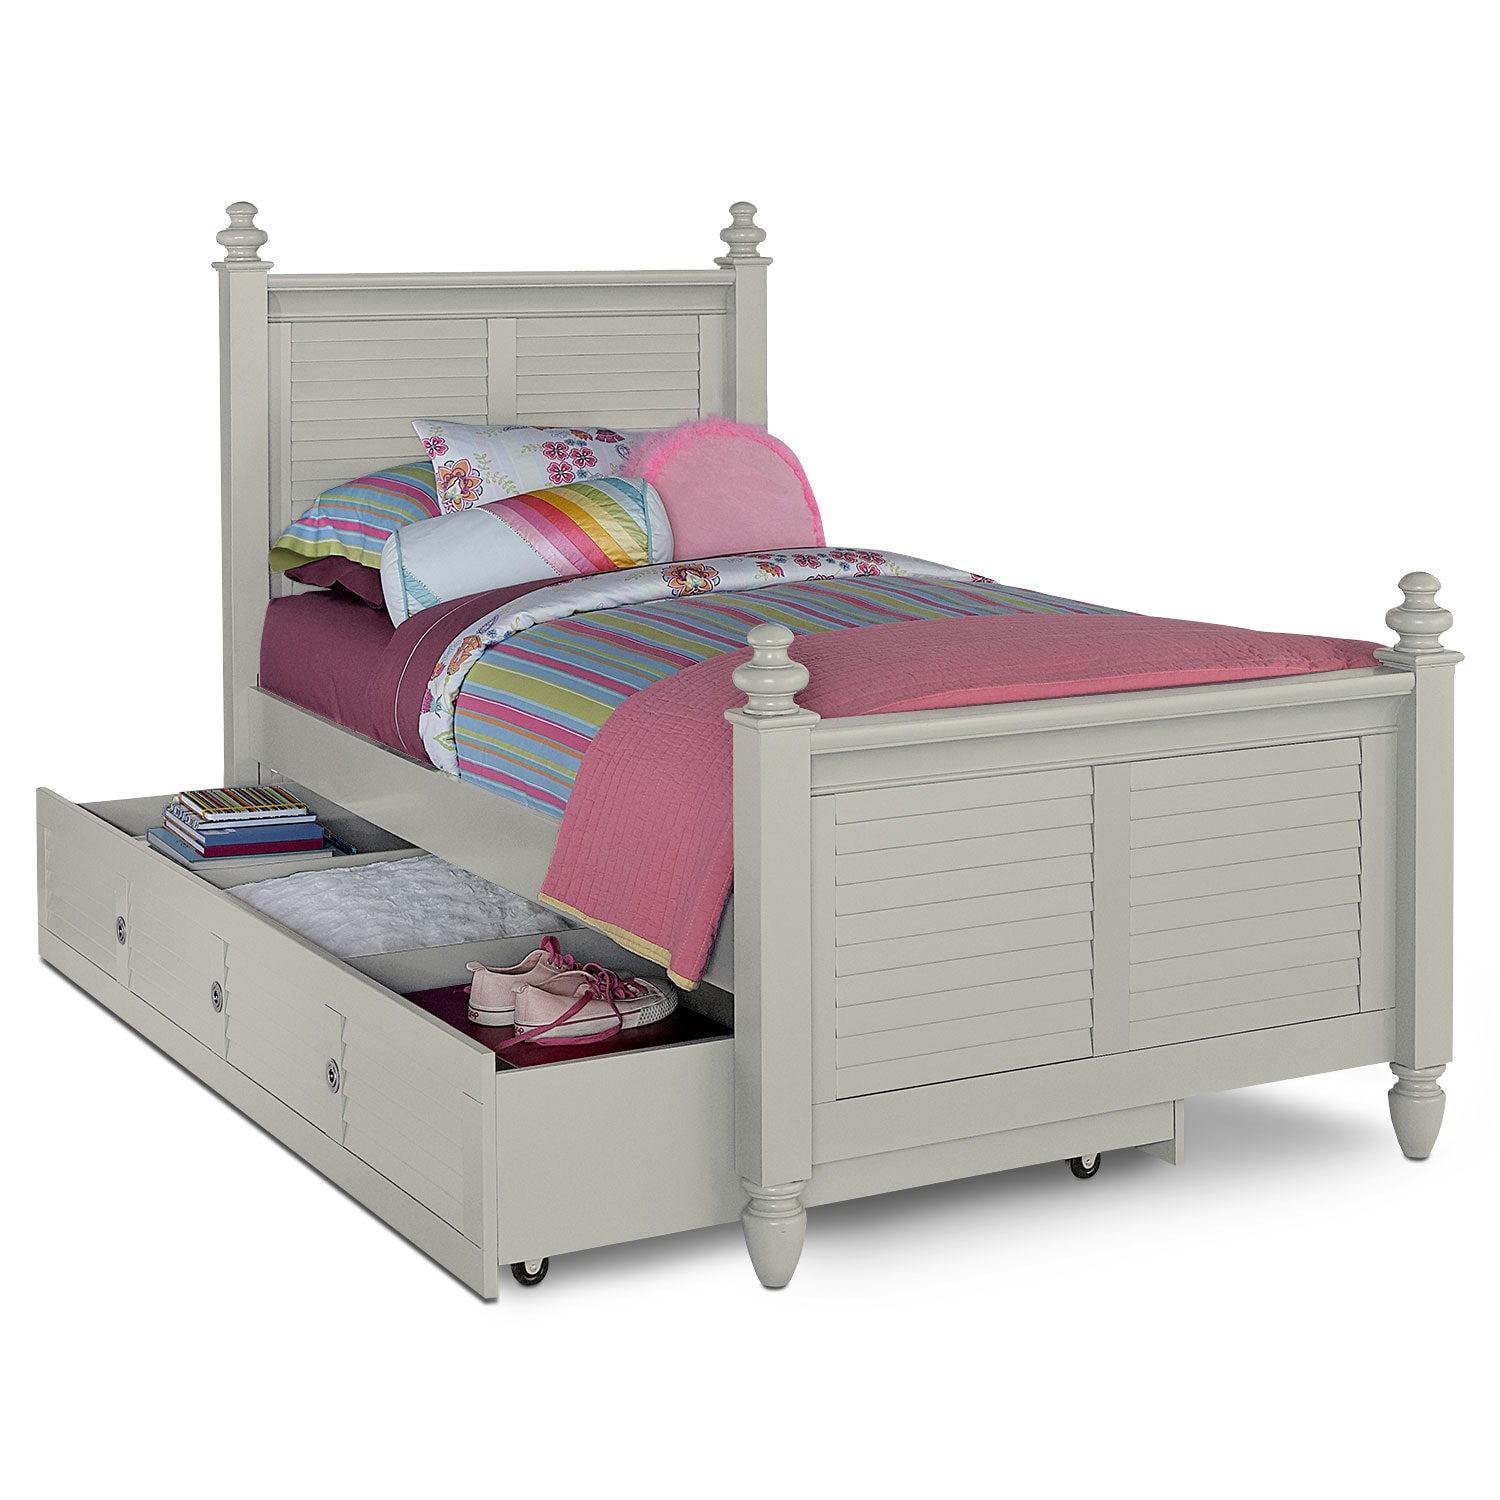 Seaside twin bed with trundle gray value city furniture for Beds with trundle